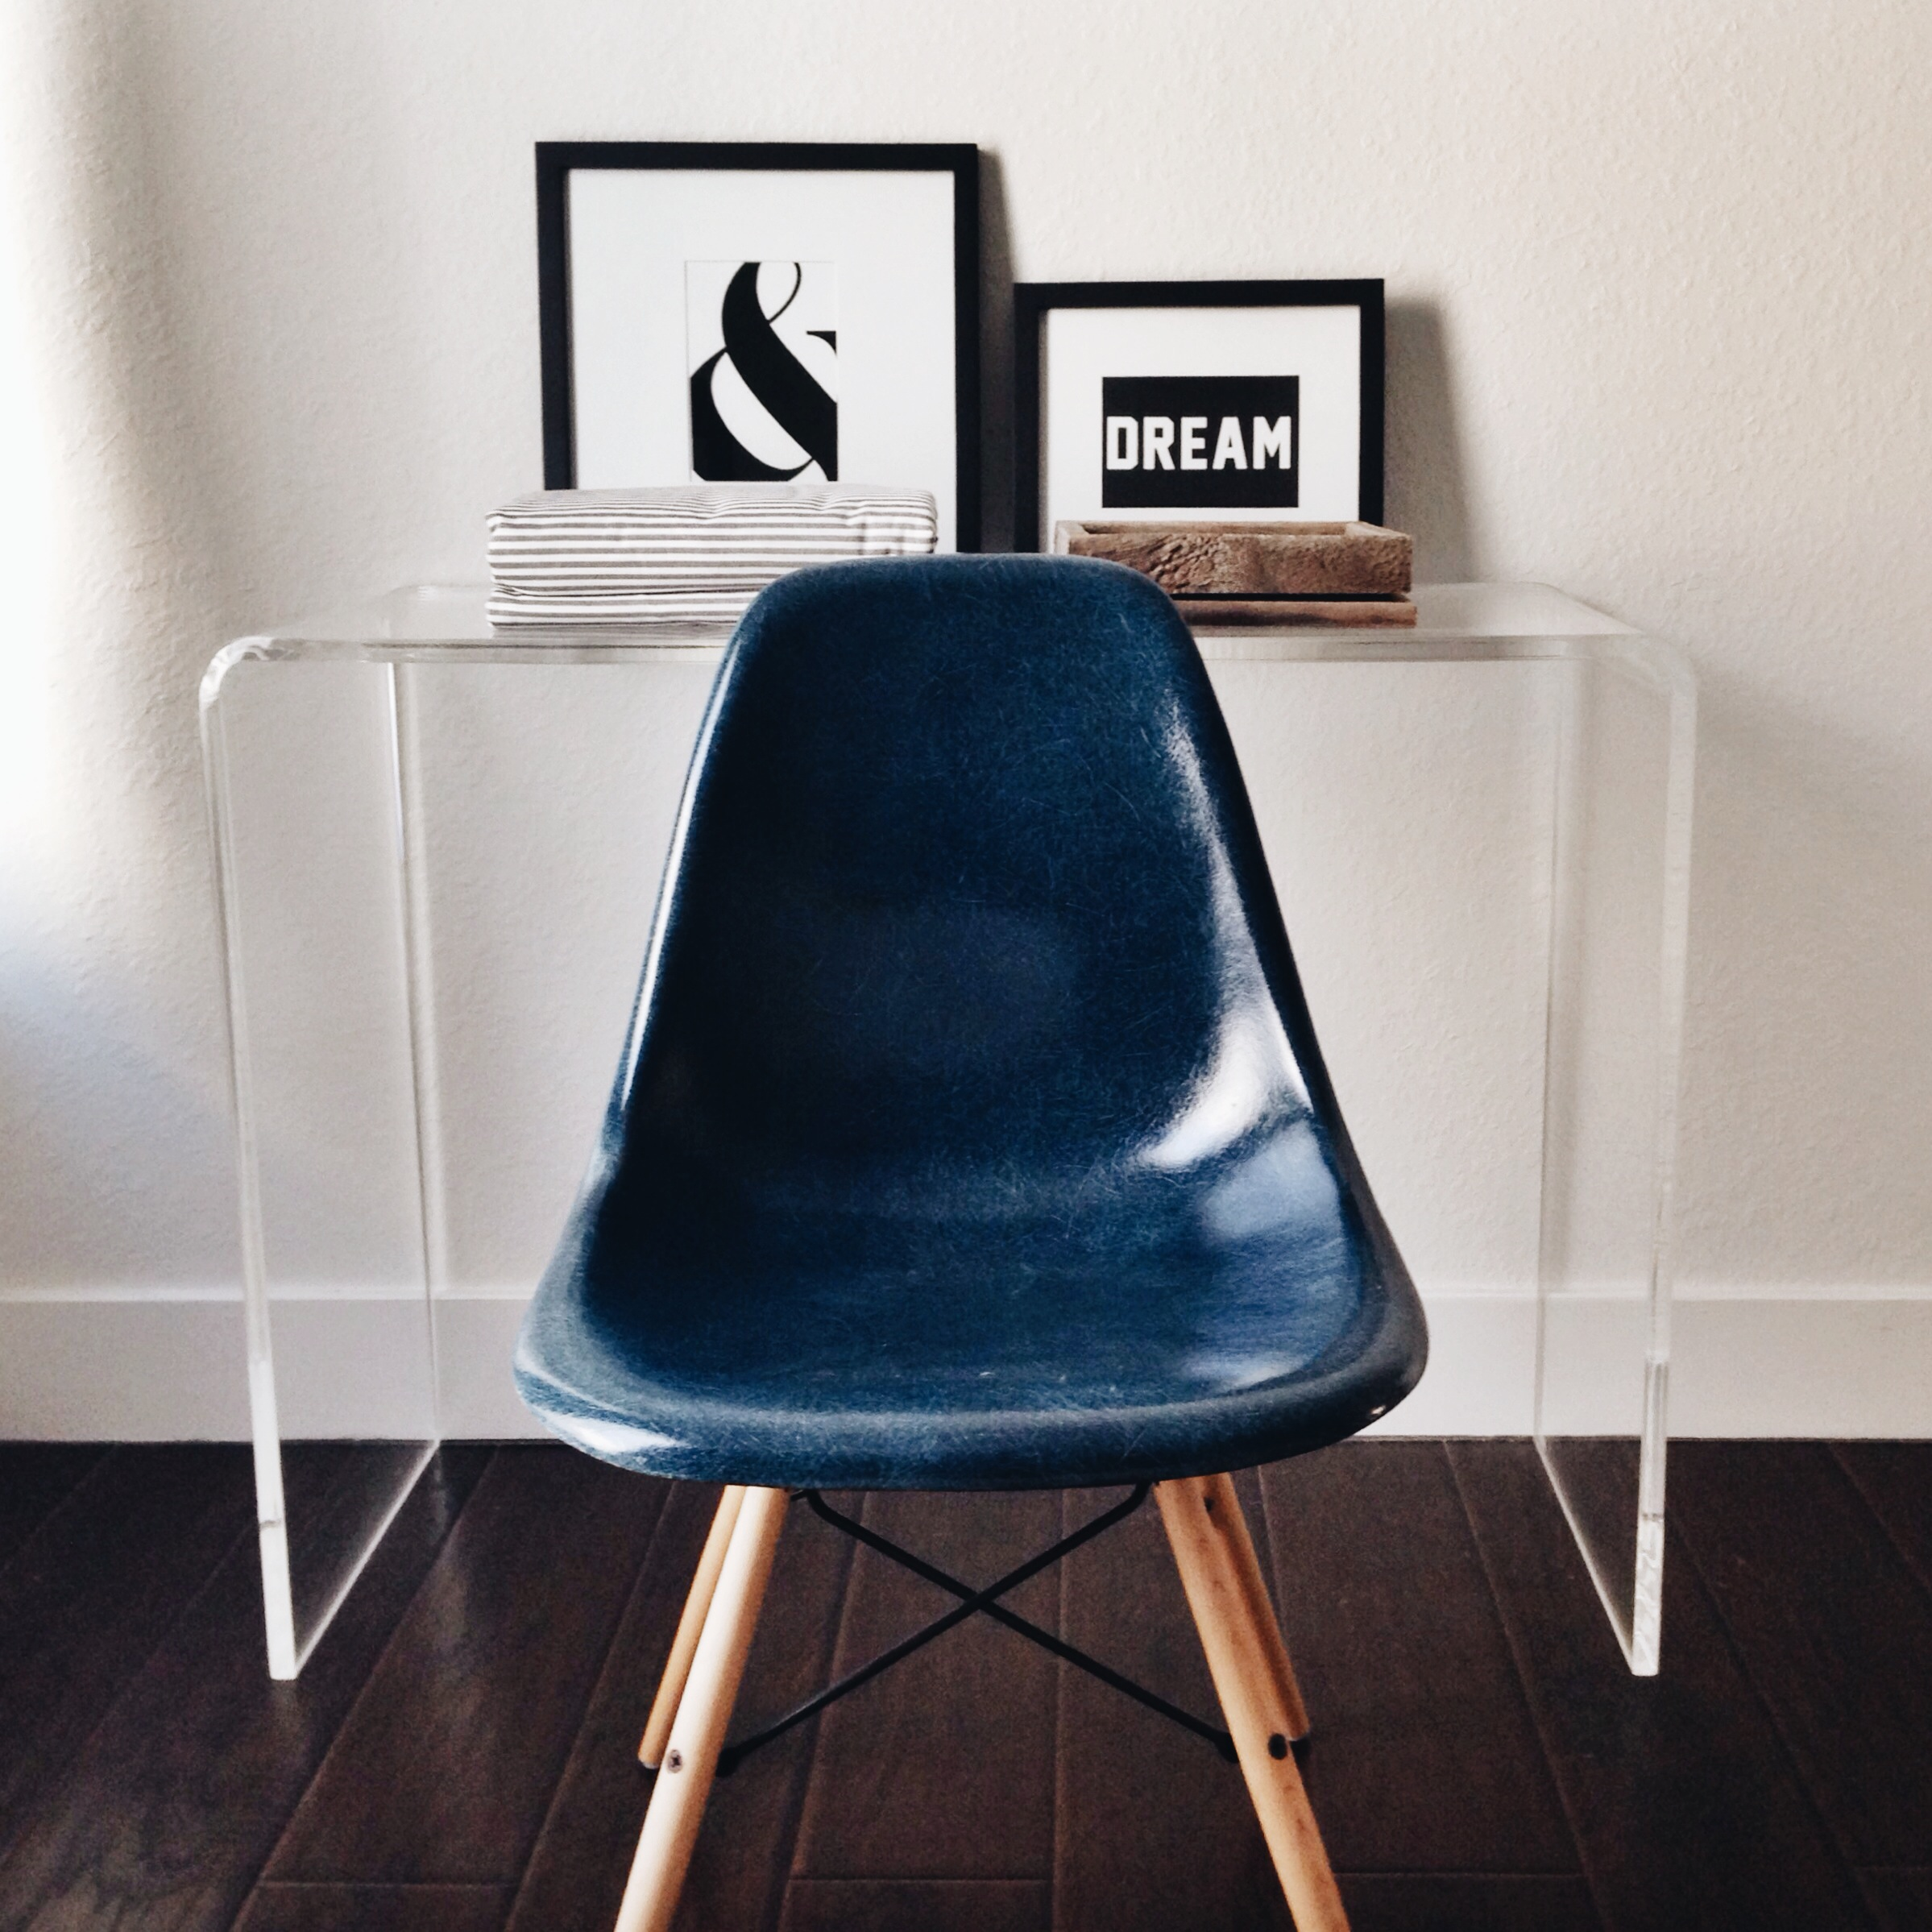 WEST ELM  gallery frames  / HERMAN MILLER  antique Eames chair (via Etsy ) / CB2  clear console table /  RUSTICDECORFRAMES  picture frames (via Etsy)